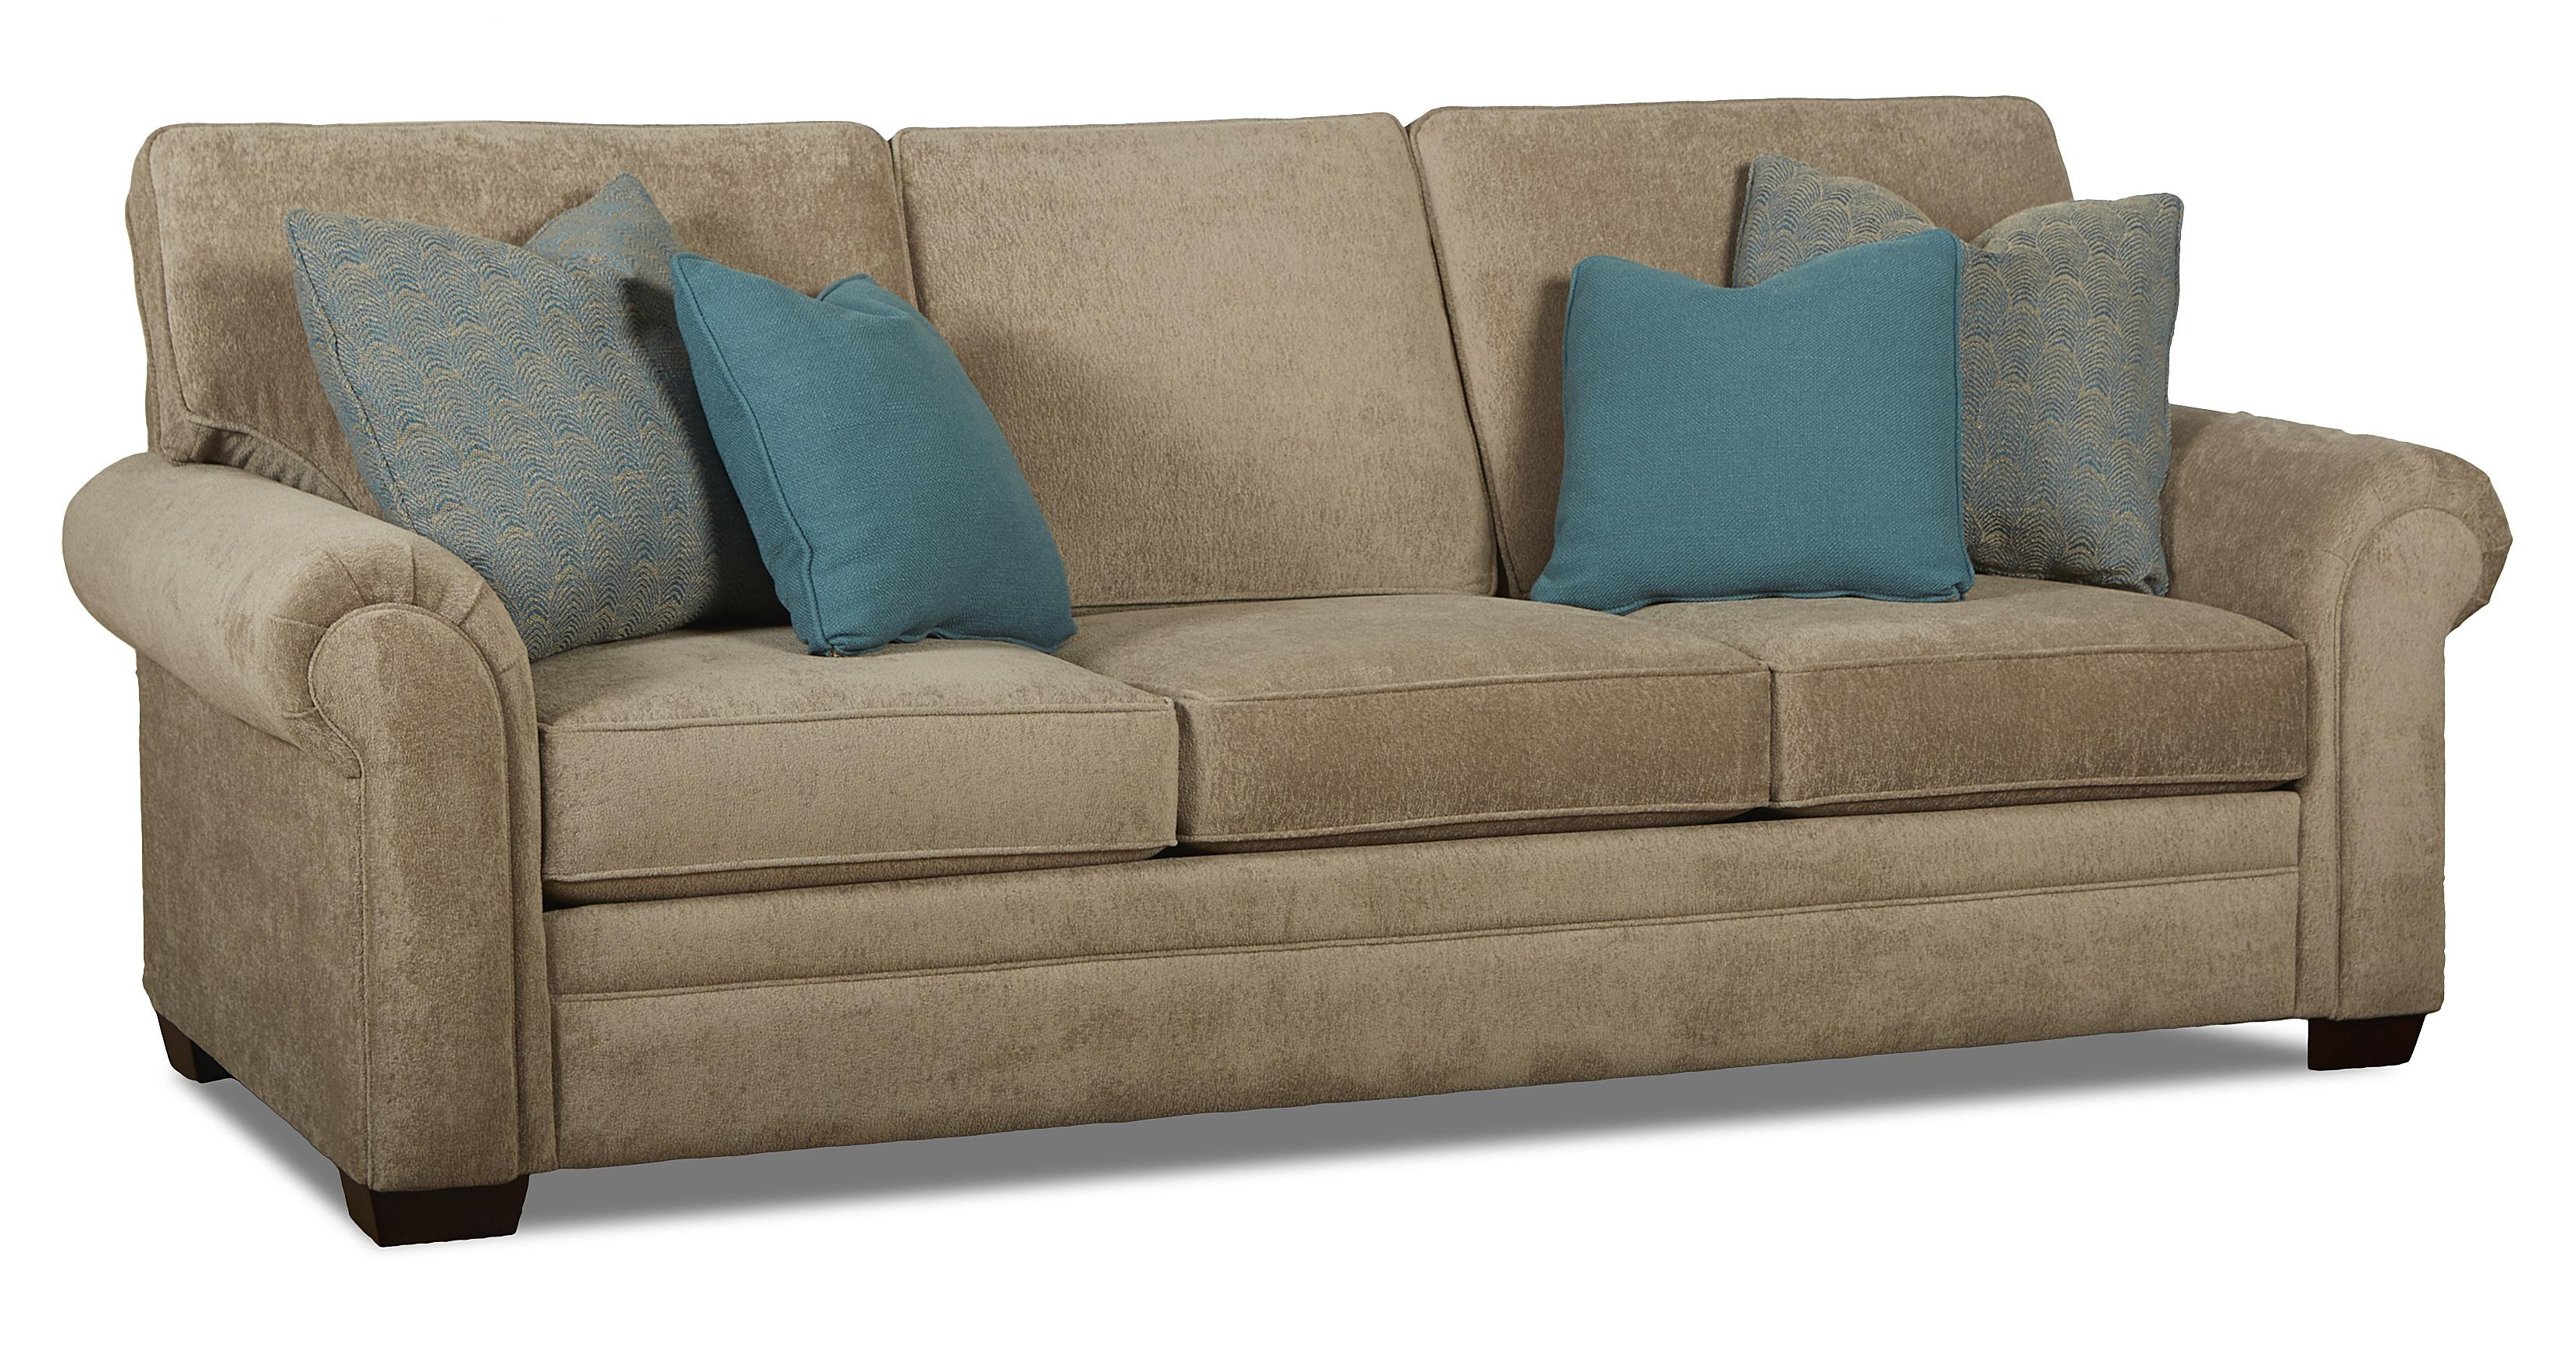 traditional sofa sleeper ultra modern bed queen inner spring by klaussner